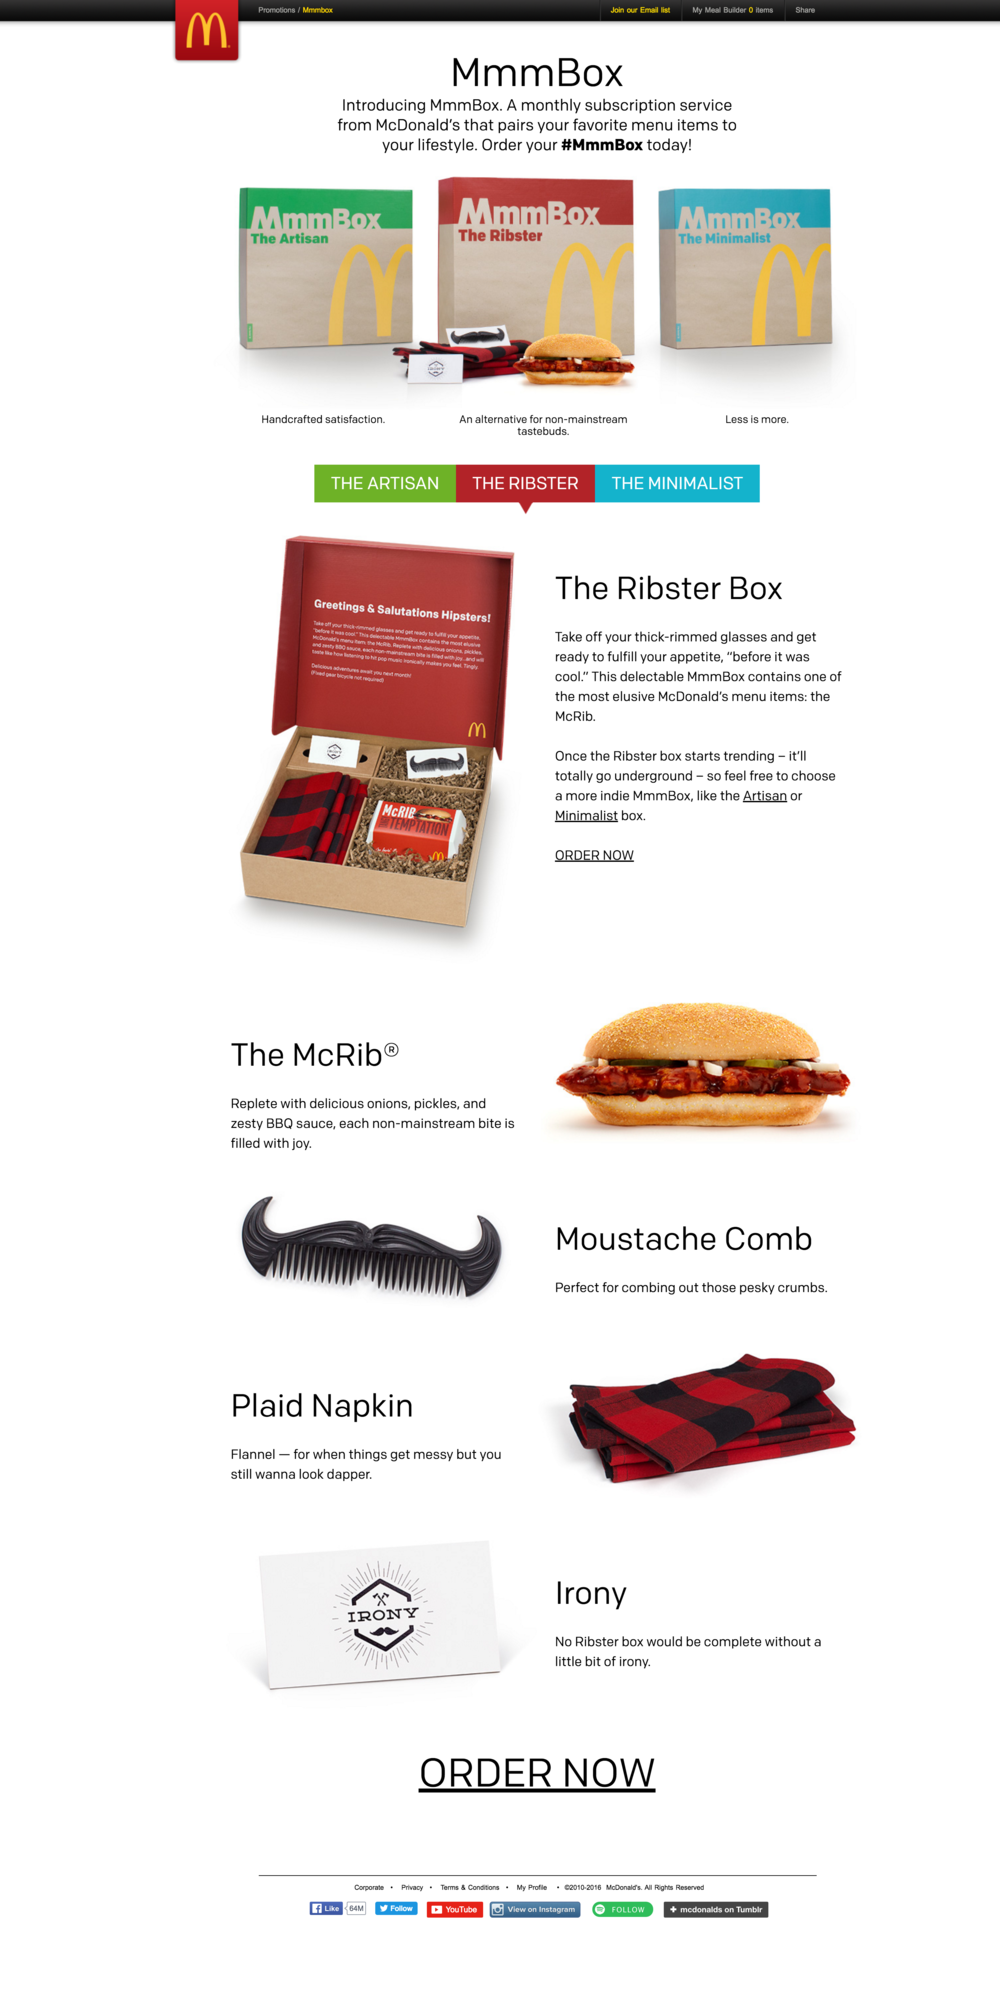 screencapture-www-mcdonalds-com-us-en-promotions-mmmbox-html-1462846931616.png